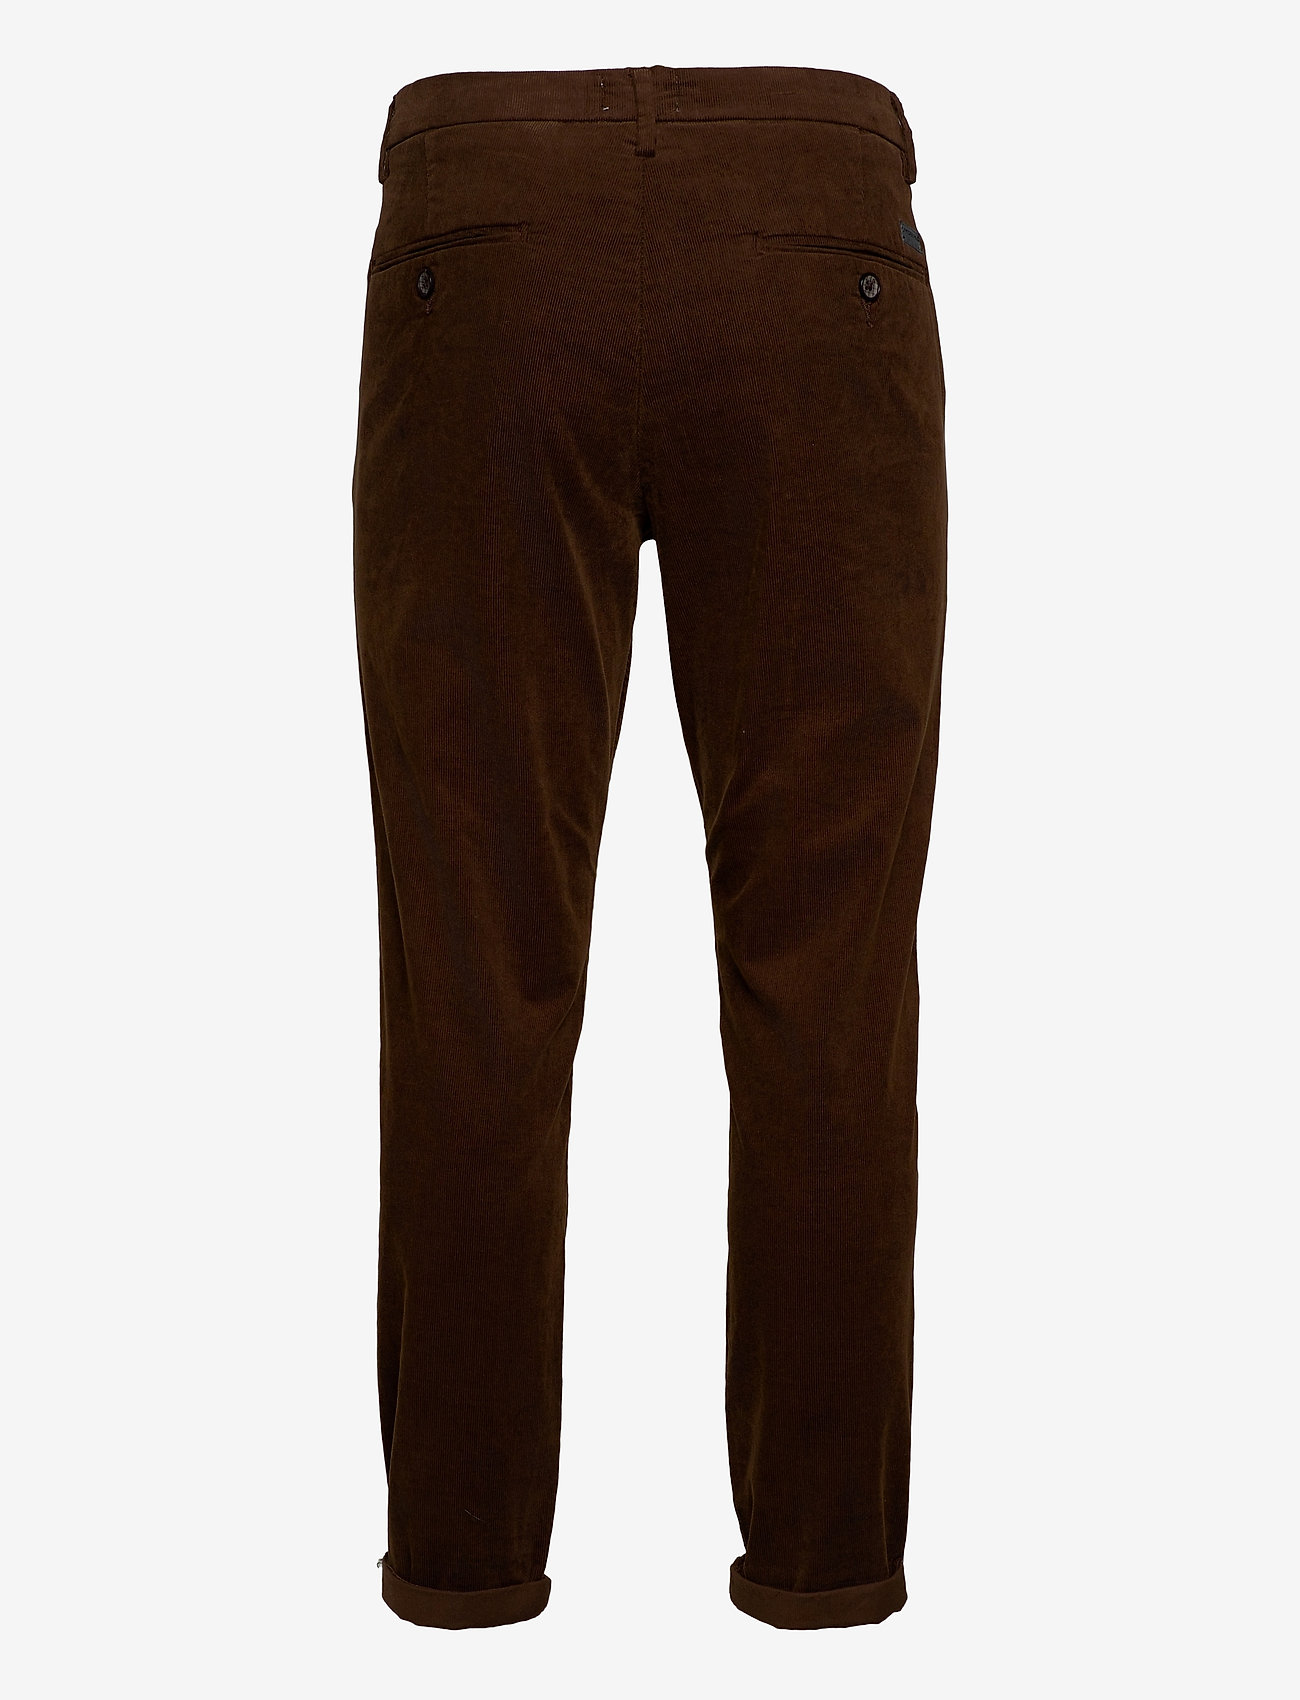 Lindbergh - Corduroy slim fit pants - rennot - brown - 1